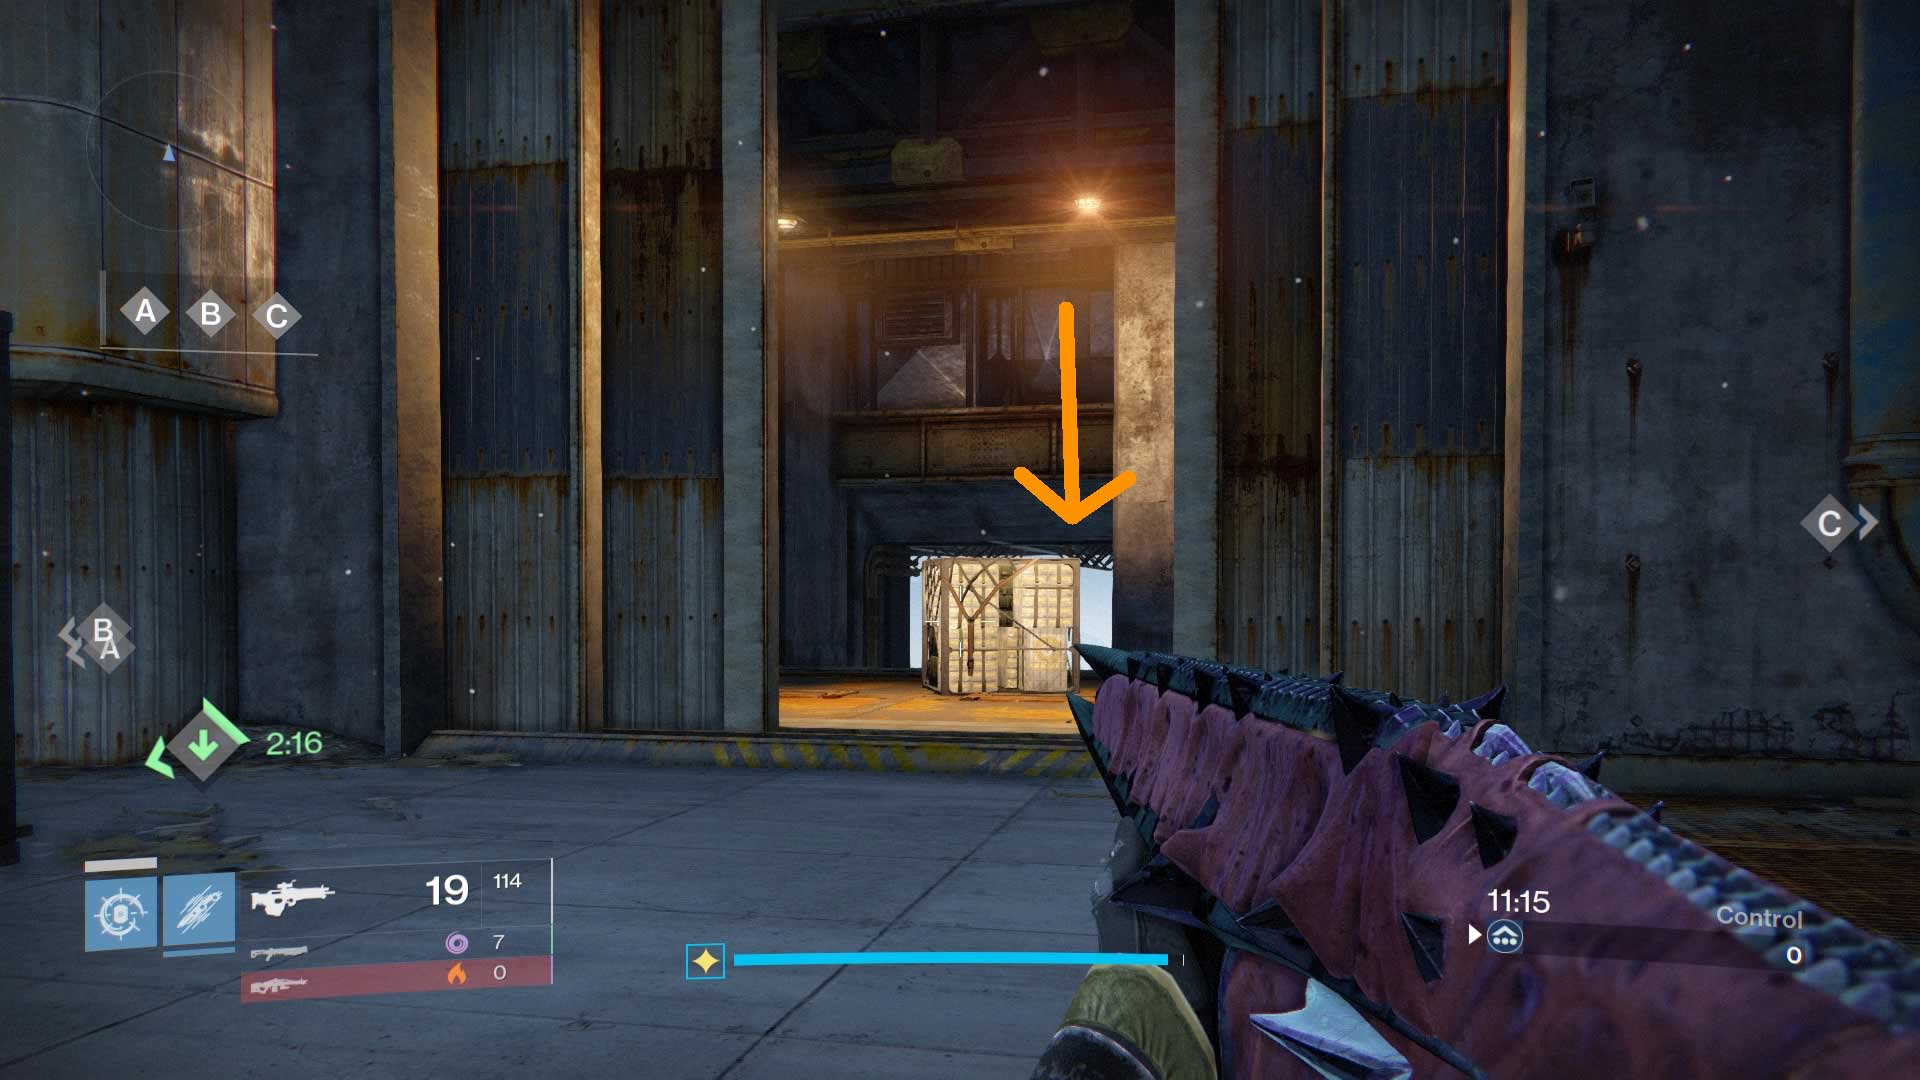 destiny_rise_of_iron_new_crucible_map_dead_ghosts_locations_visual_guide_twilight_gap_1